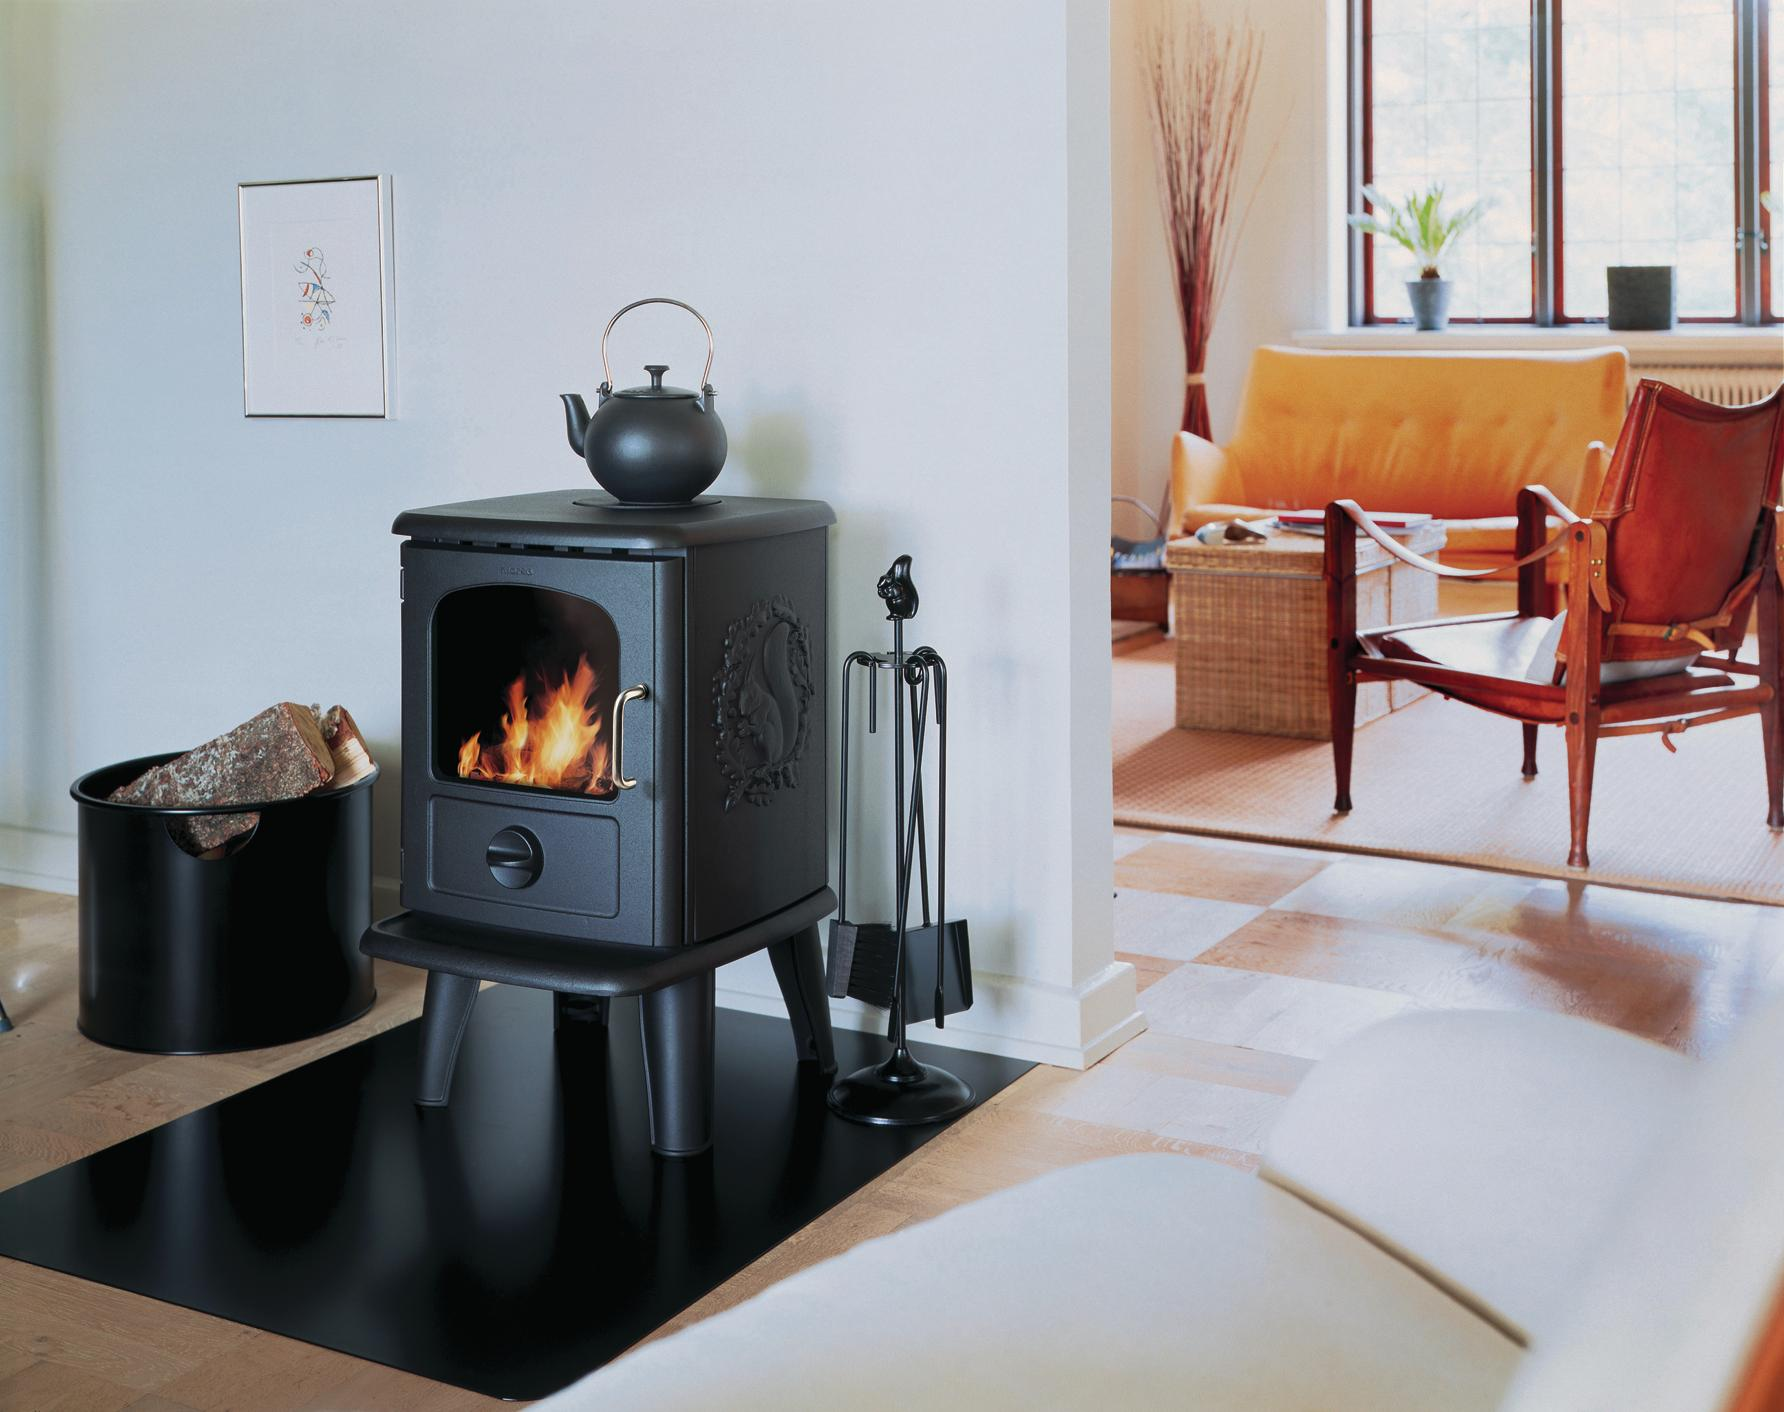 Morso 3100 series wood stoves remodeling fireplaces hvac luxury casework mors morso - Small space wood stove model ...